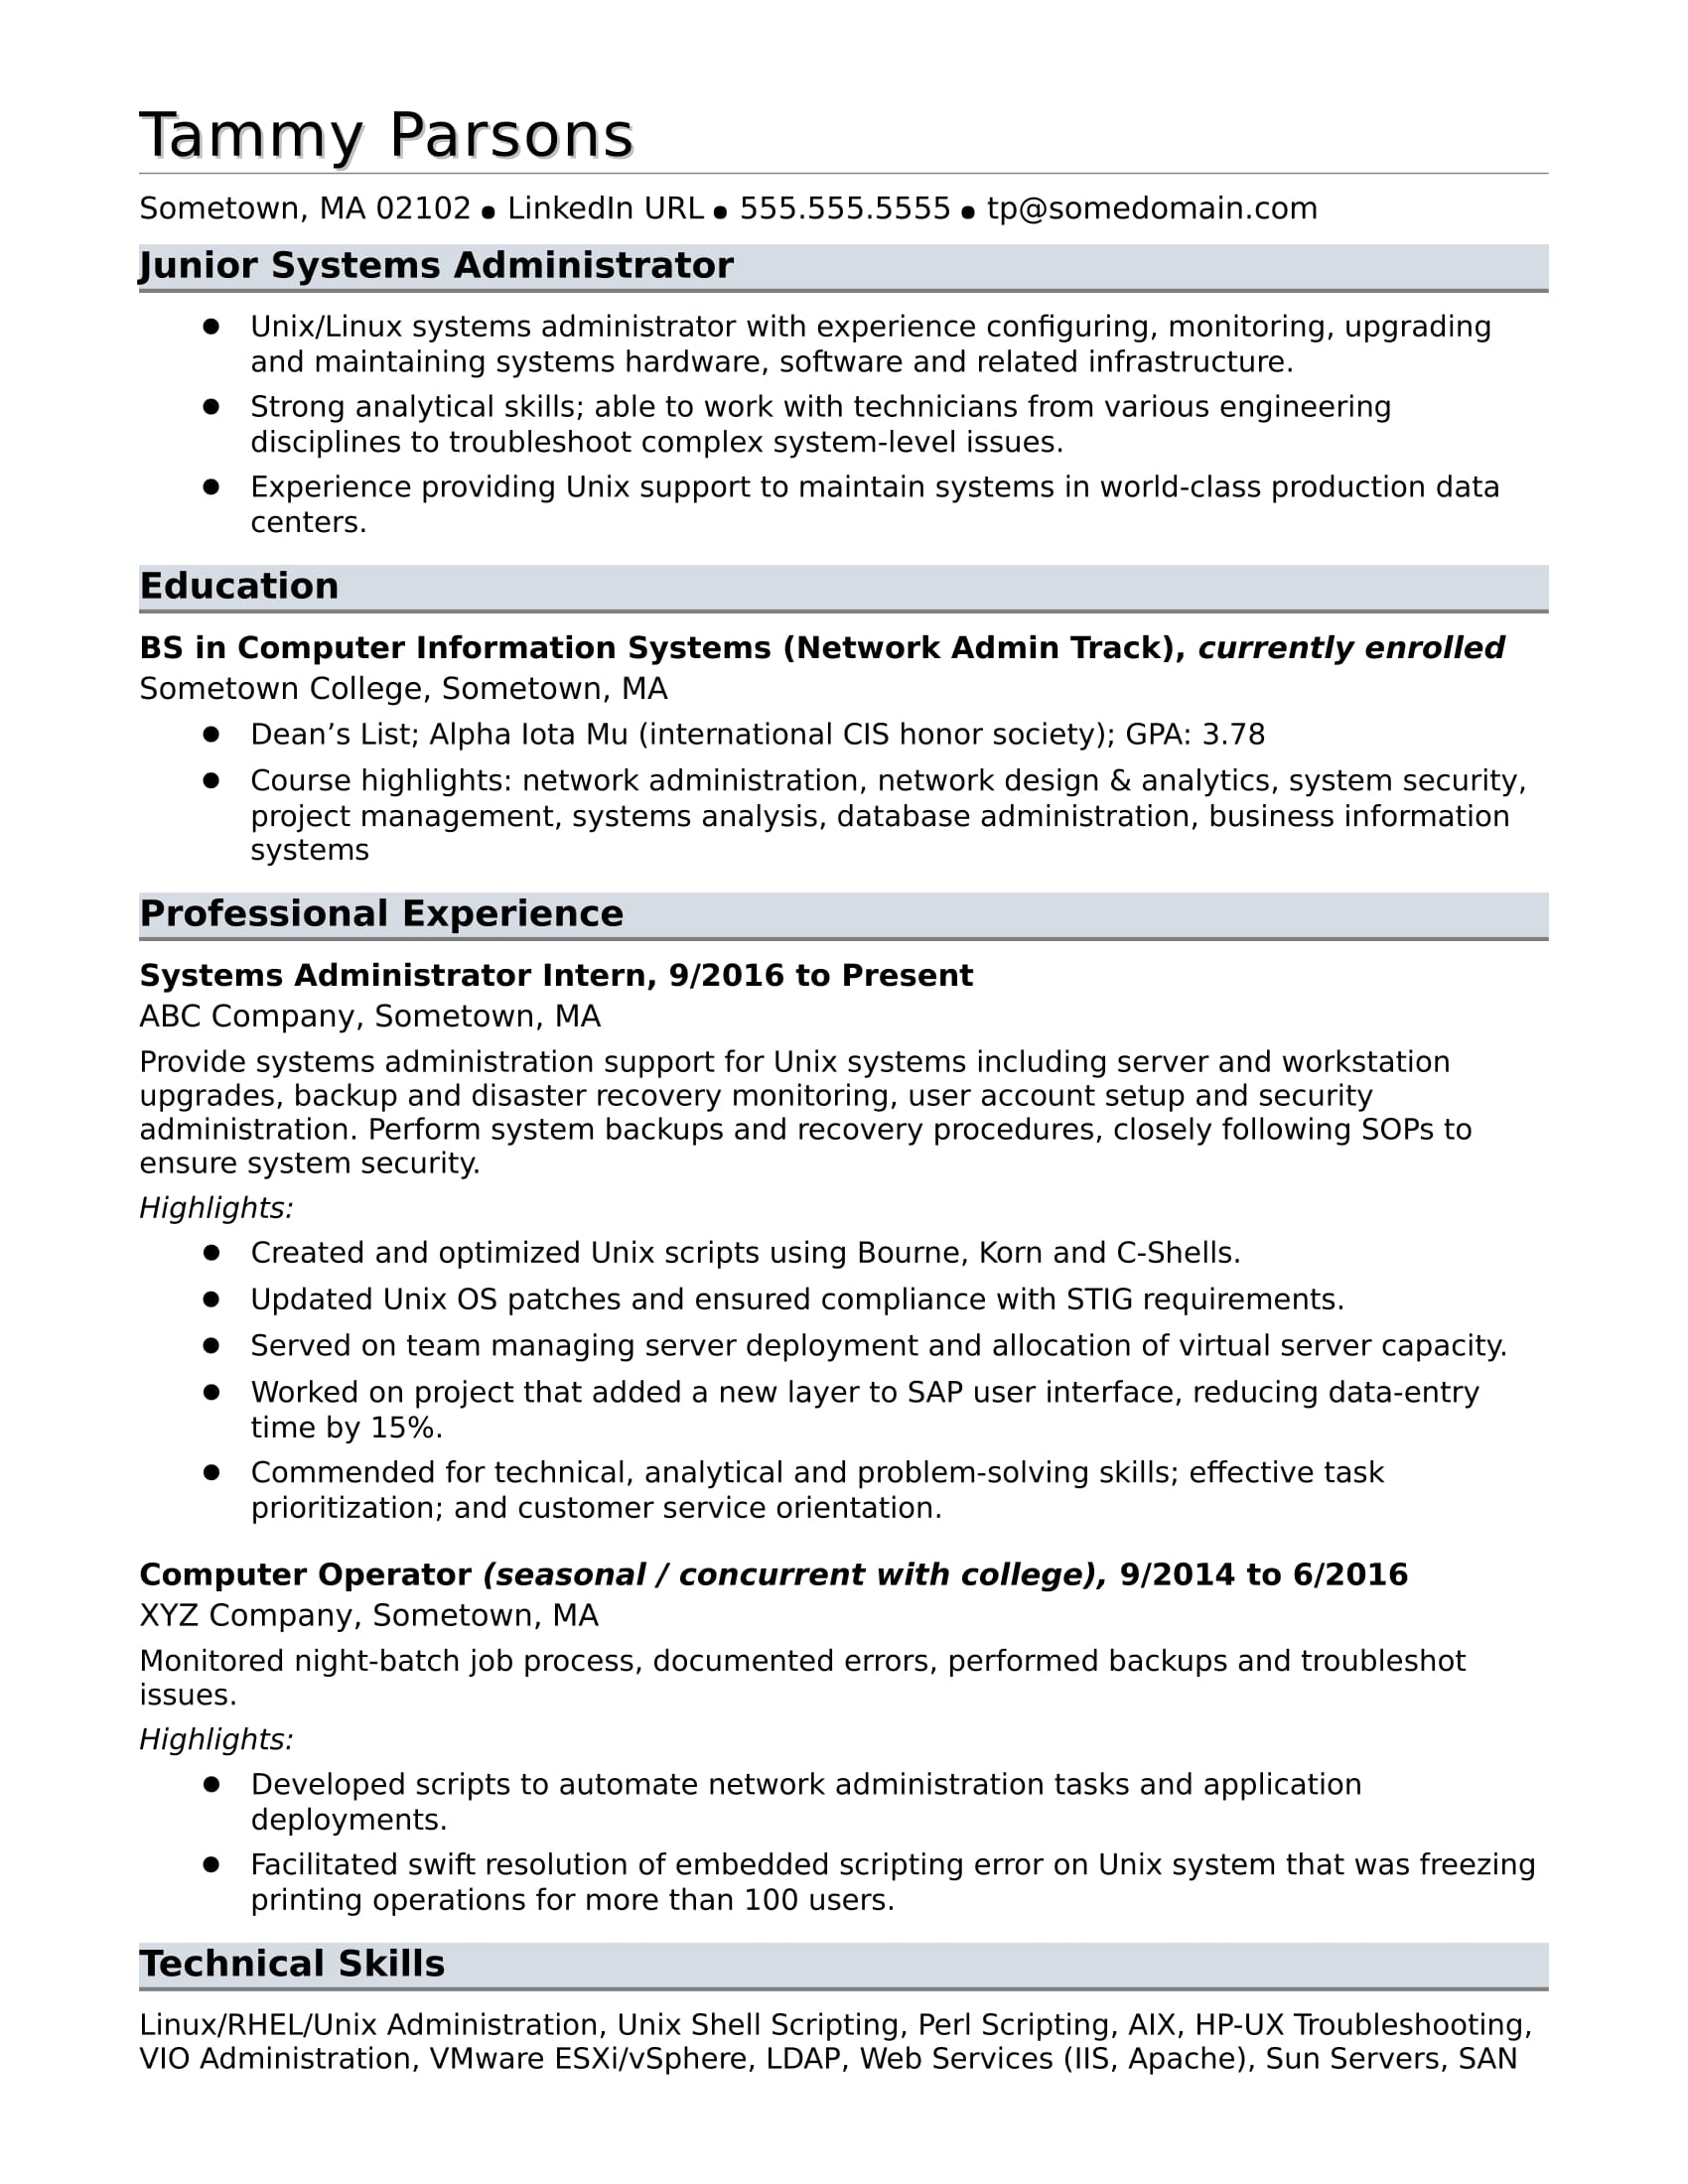 sample resume for an entry level systems administrator - Administration Sample Resume